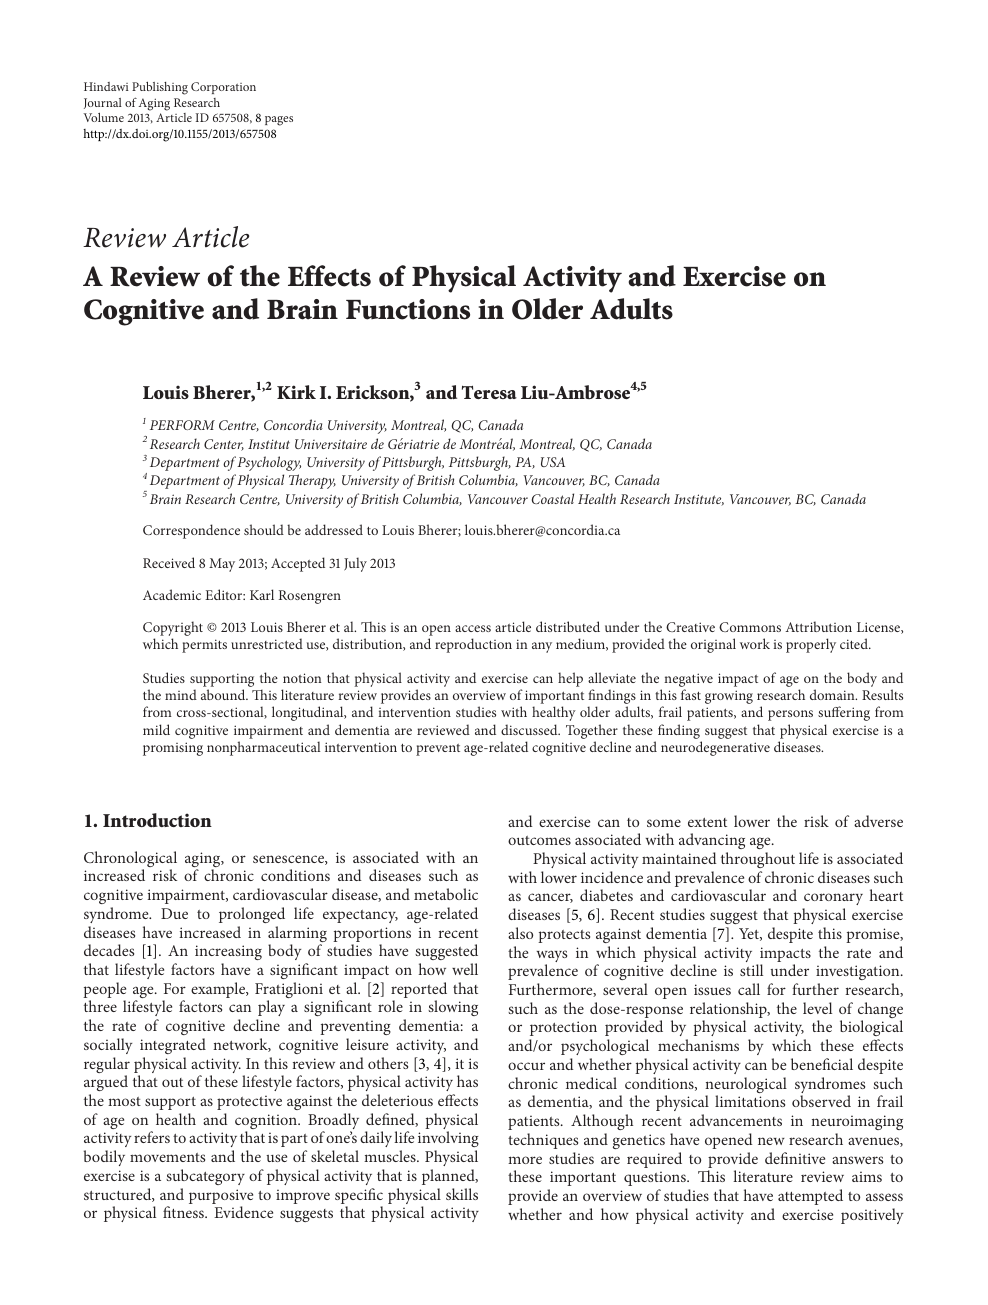 A Review of the Effects of Physical Activity and Exercise on